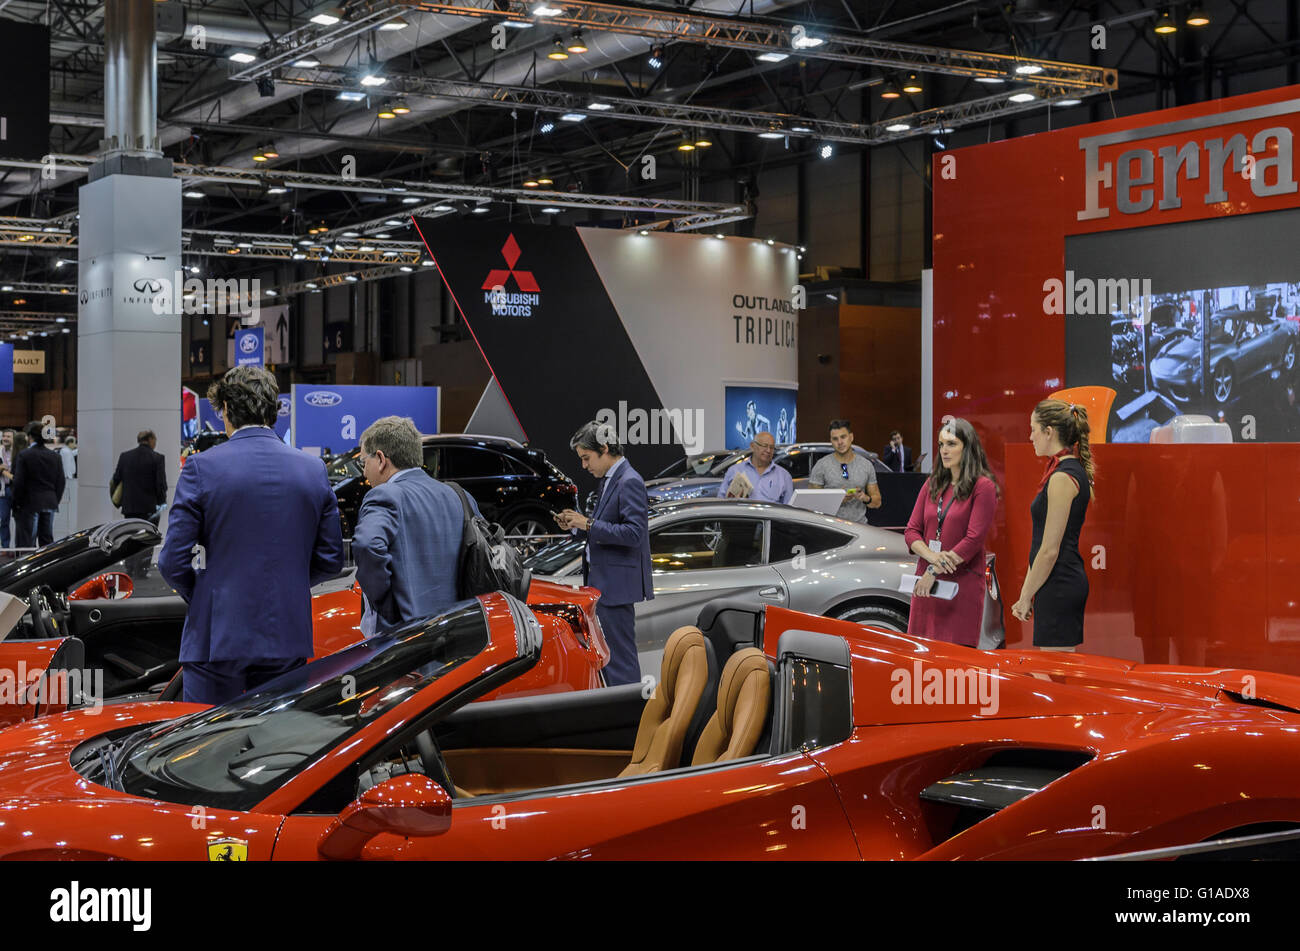 Madrid, Spain, 10 th May 2016. An Italian car rear view in the Inauguration of Automobile Exhibition. Enrique Davó/Alamy - Stock Image